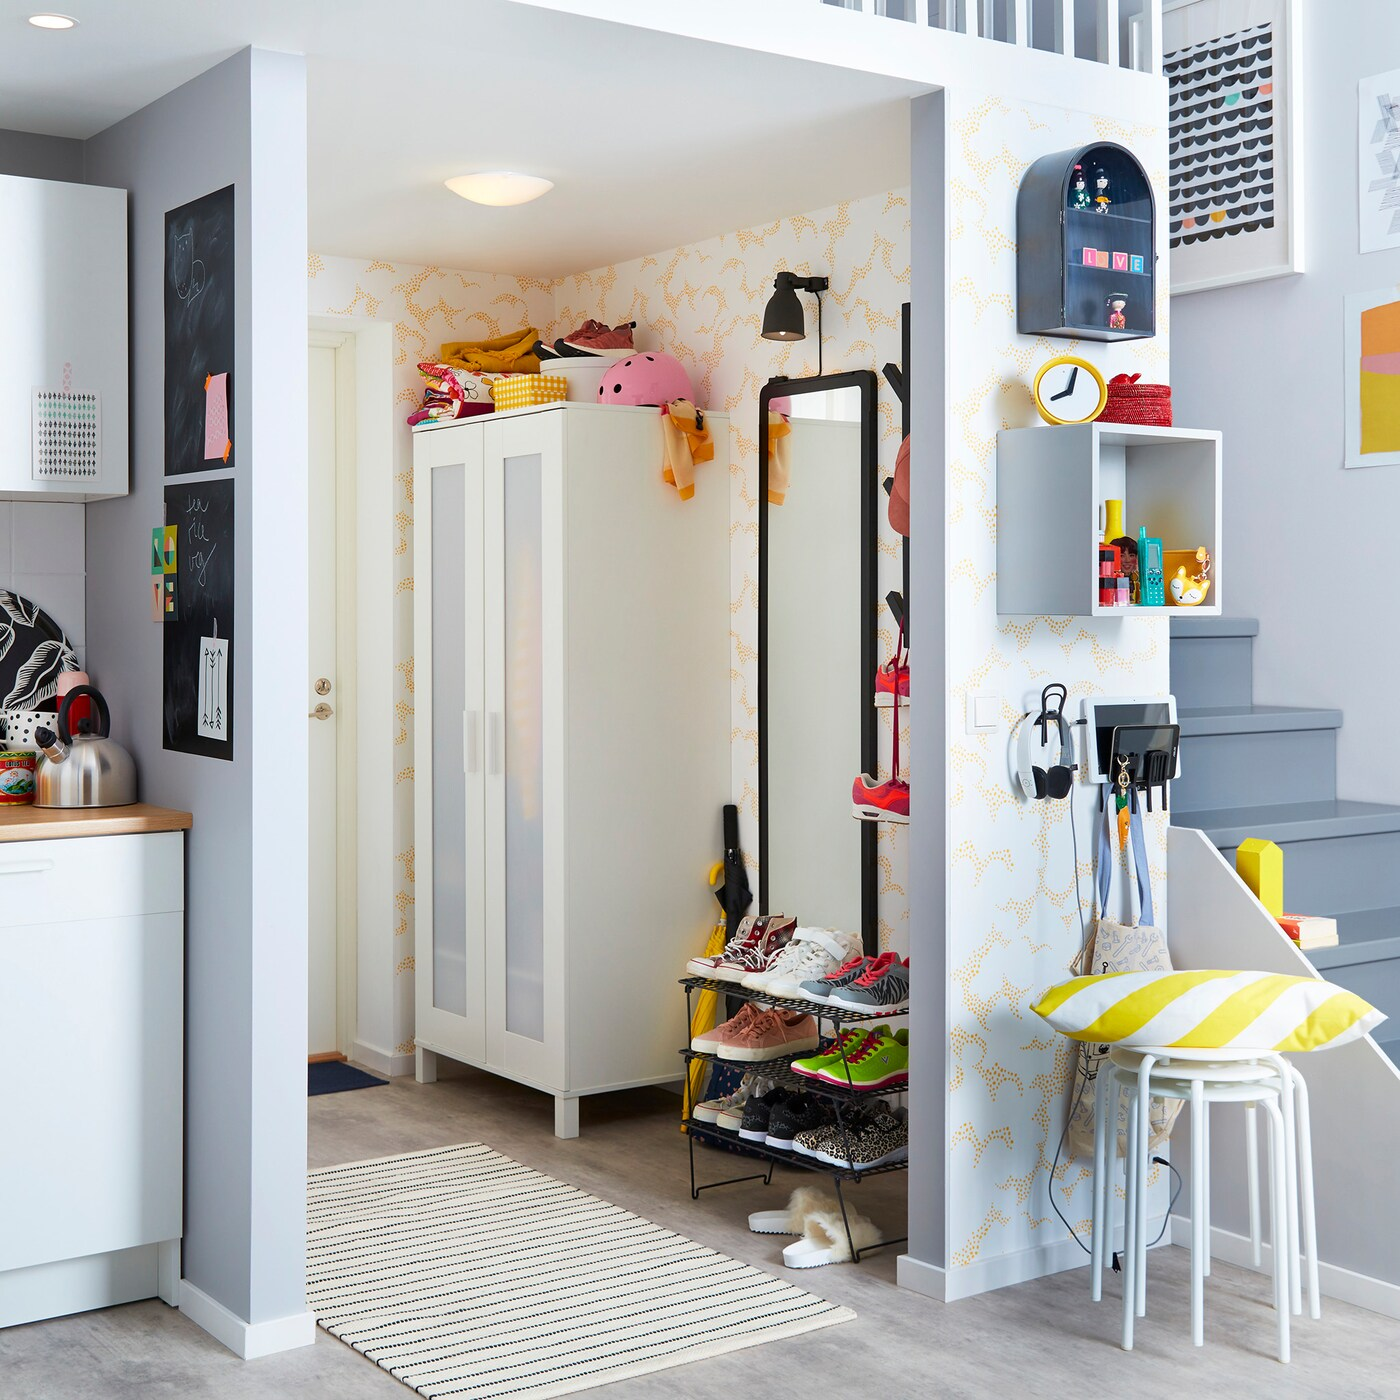 A hallway with ANEBODA wardrobe, a GREJIG shoe rack, a mirror and a white carpet on the floor and stairs in the background.